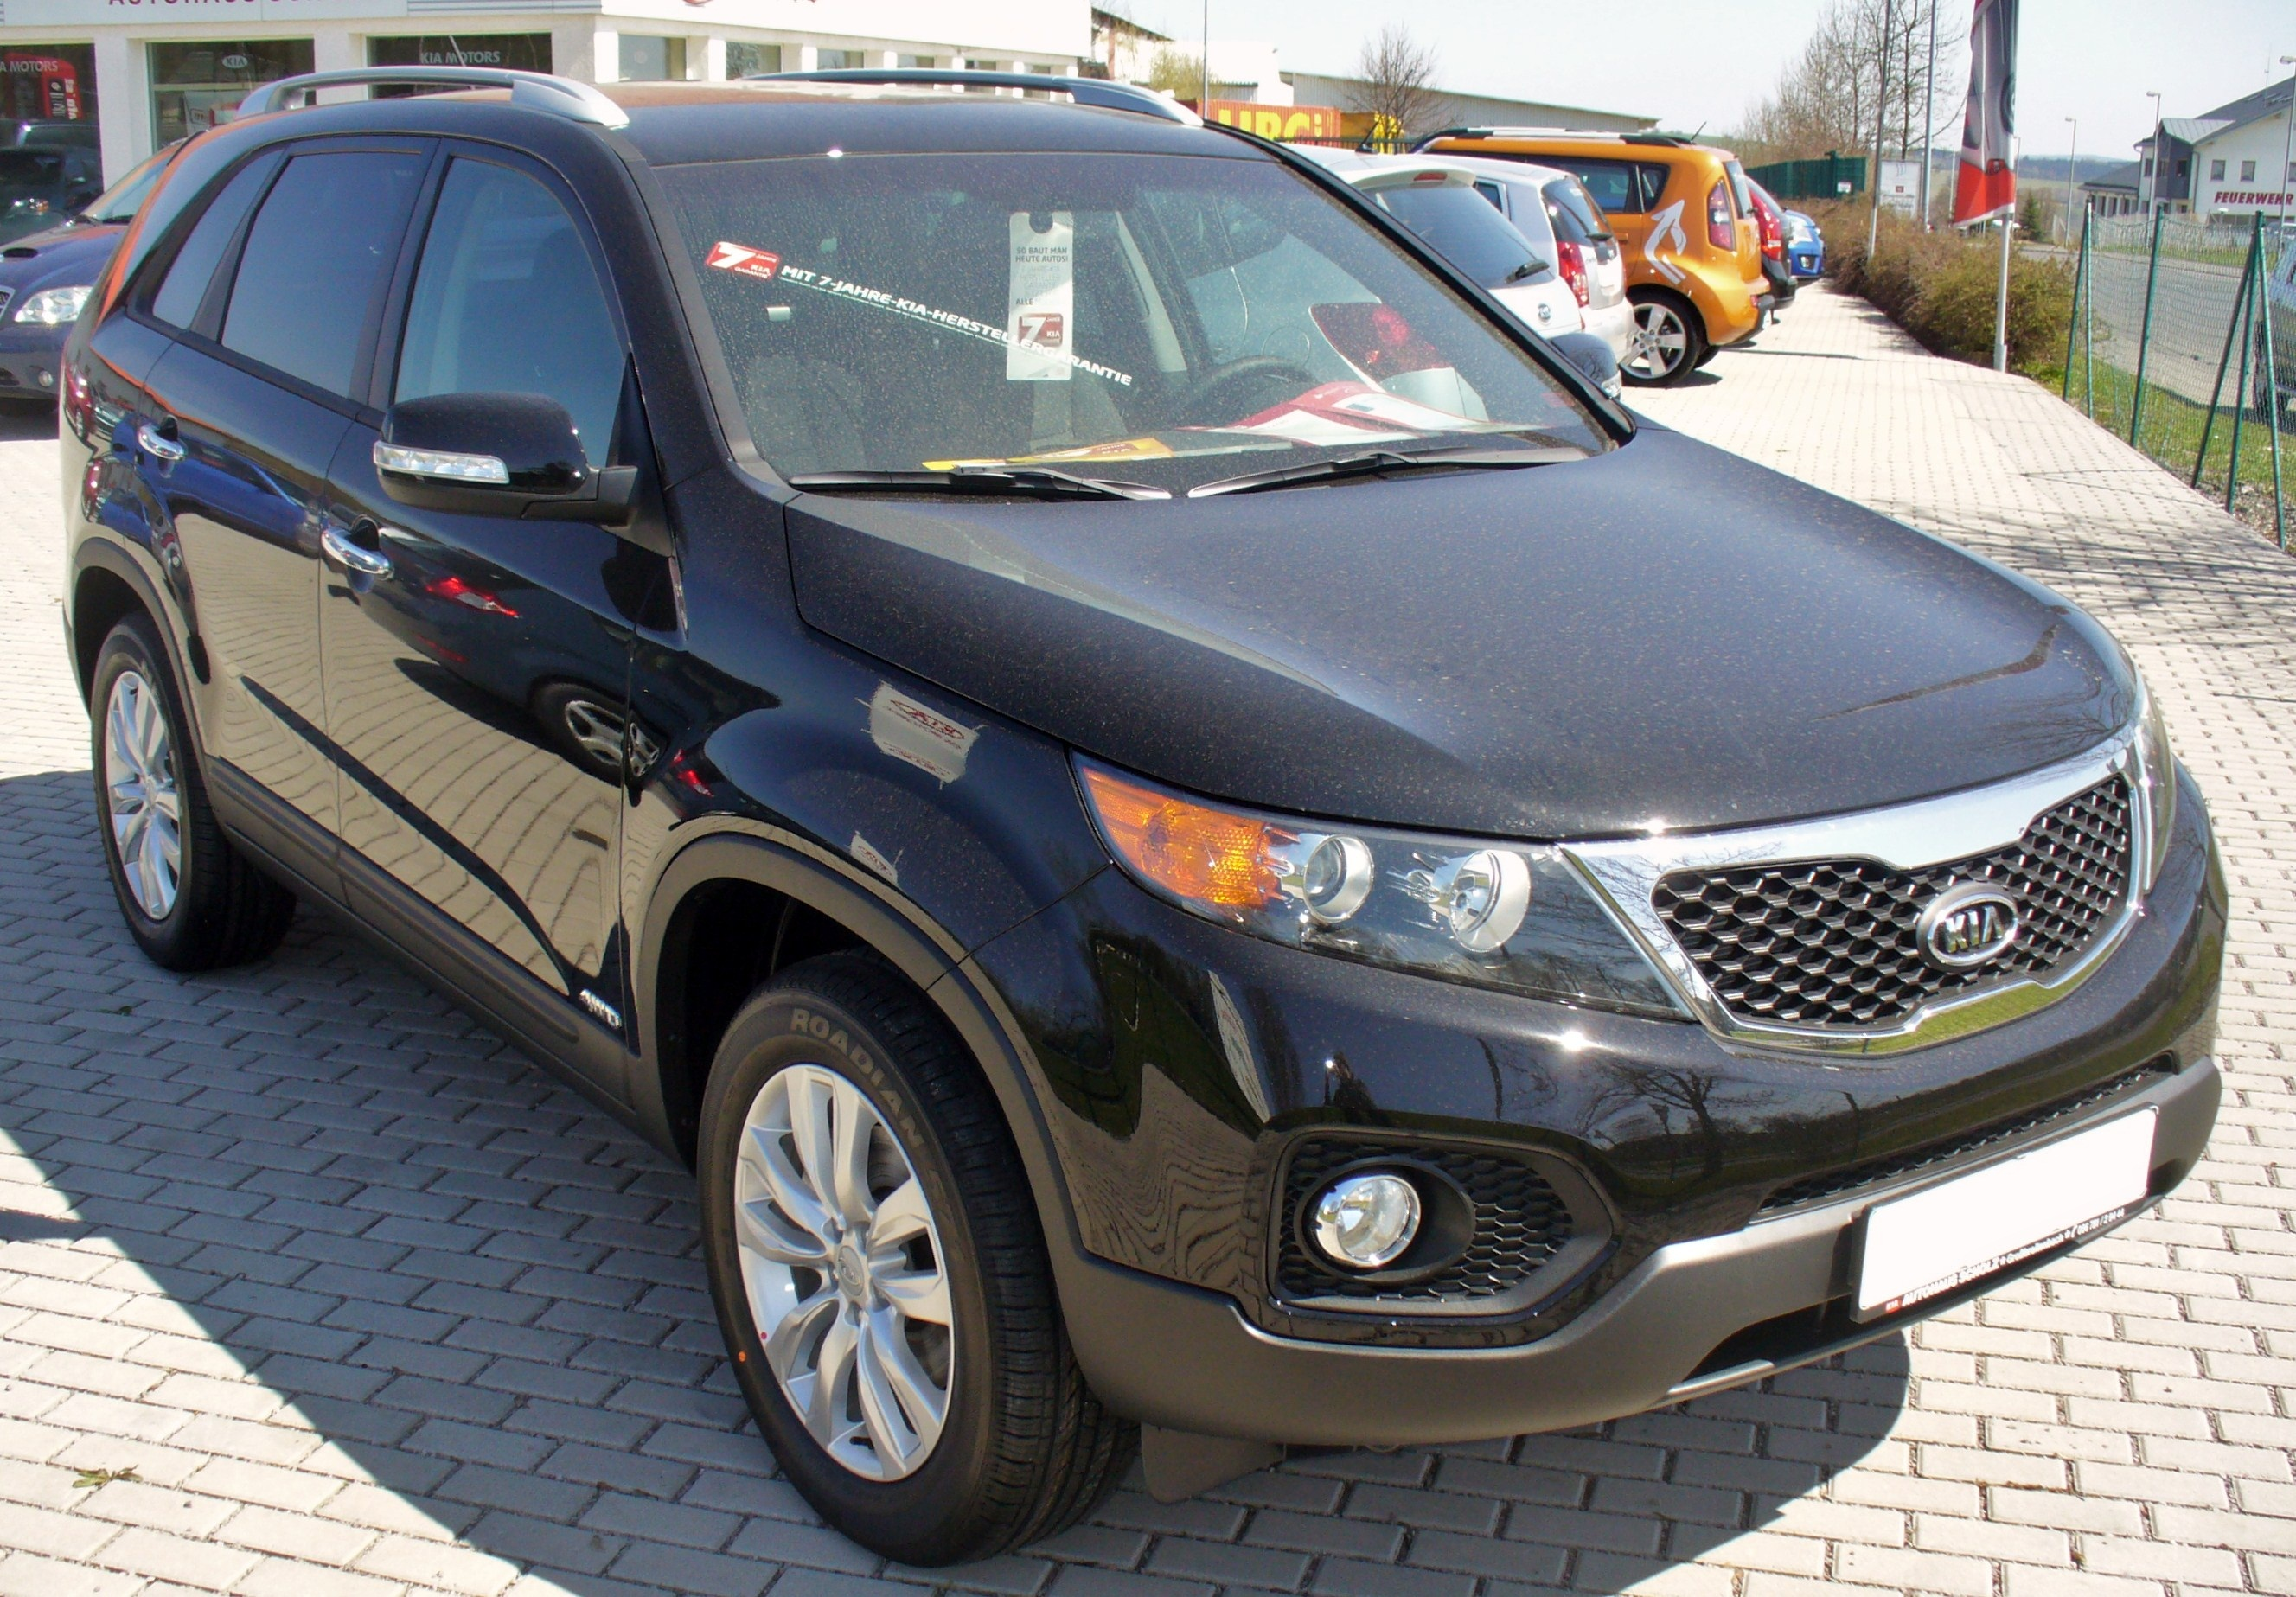 file kia sorento 2 2 crdi 4wd vision schwarz jpg wikimedia commons. Black Bedroom Furniture Sets. Home Design Ideas